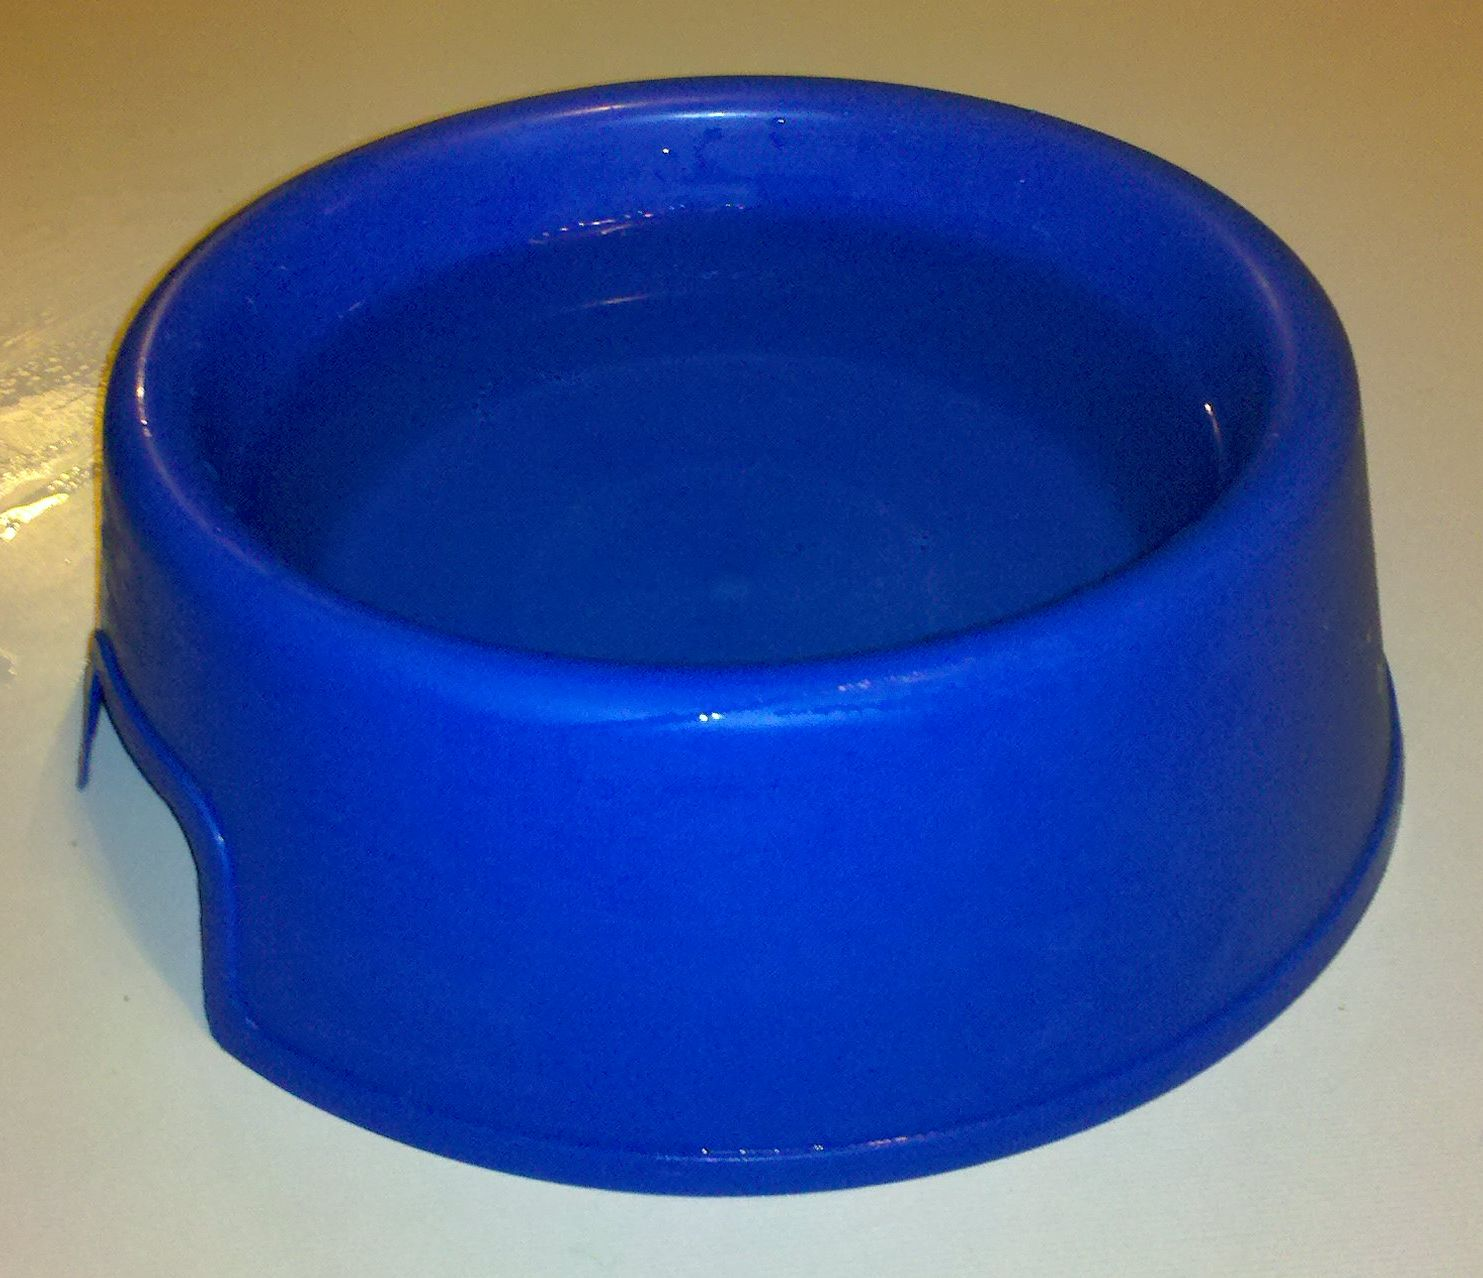 Dog Bowls For Food And Water